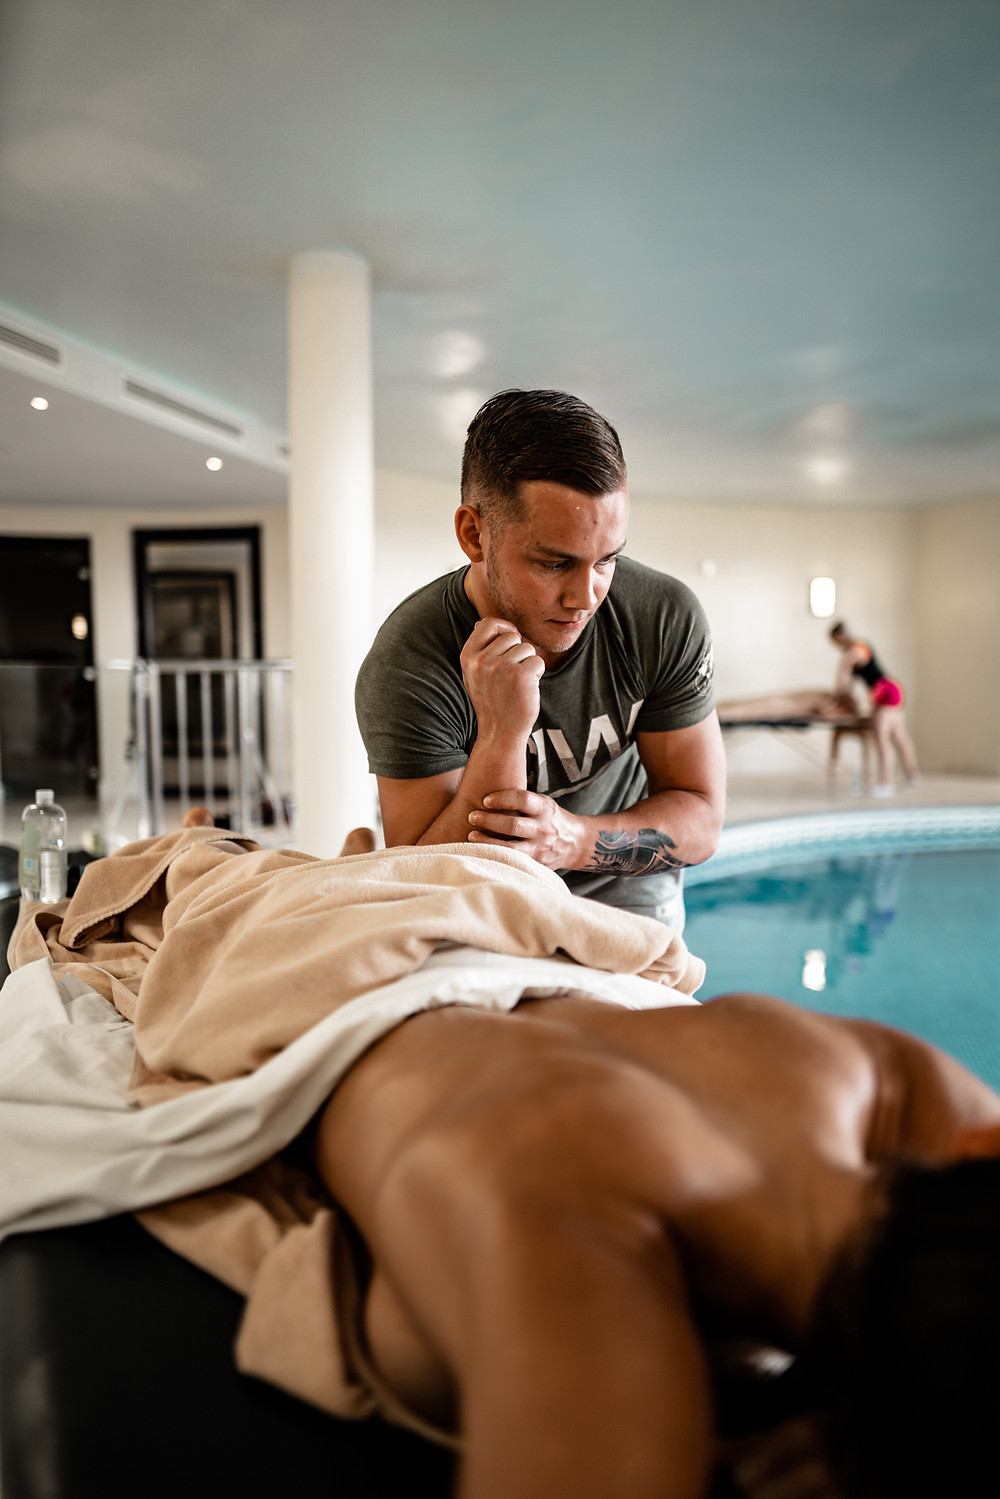 Man giving a massage in a spa